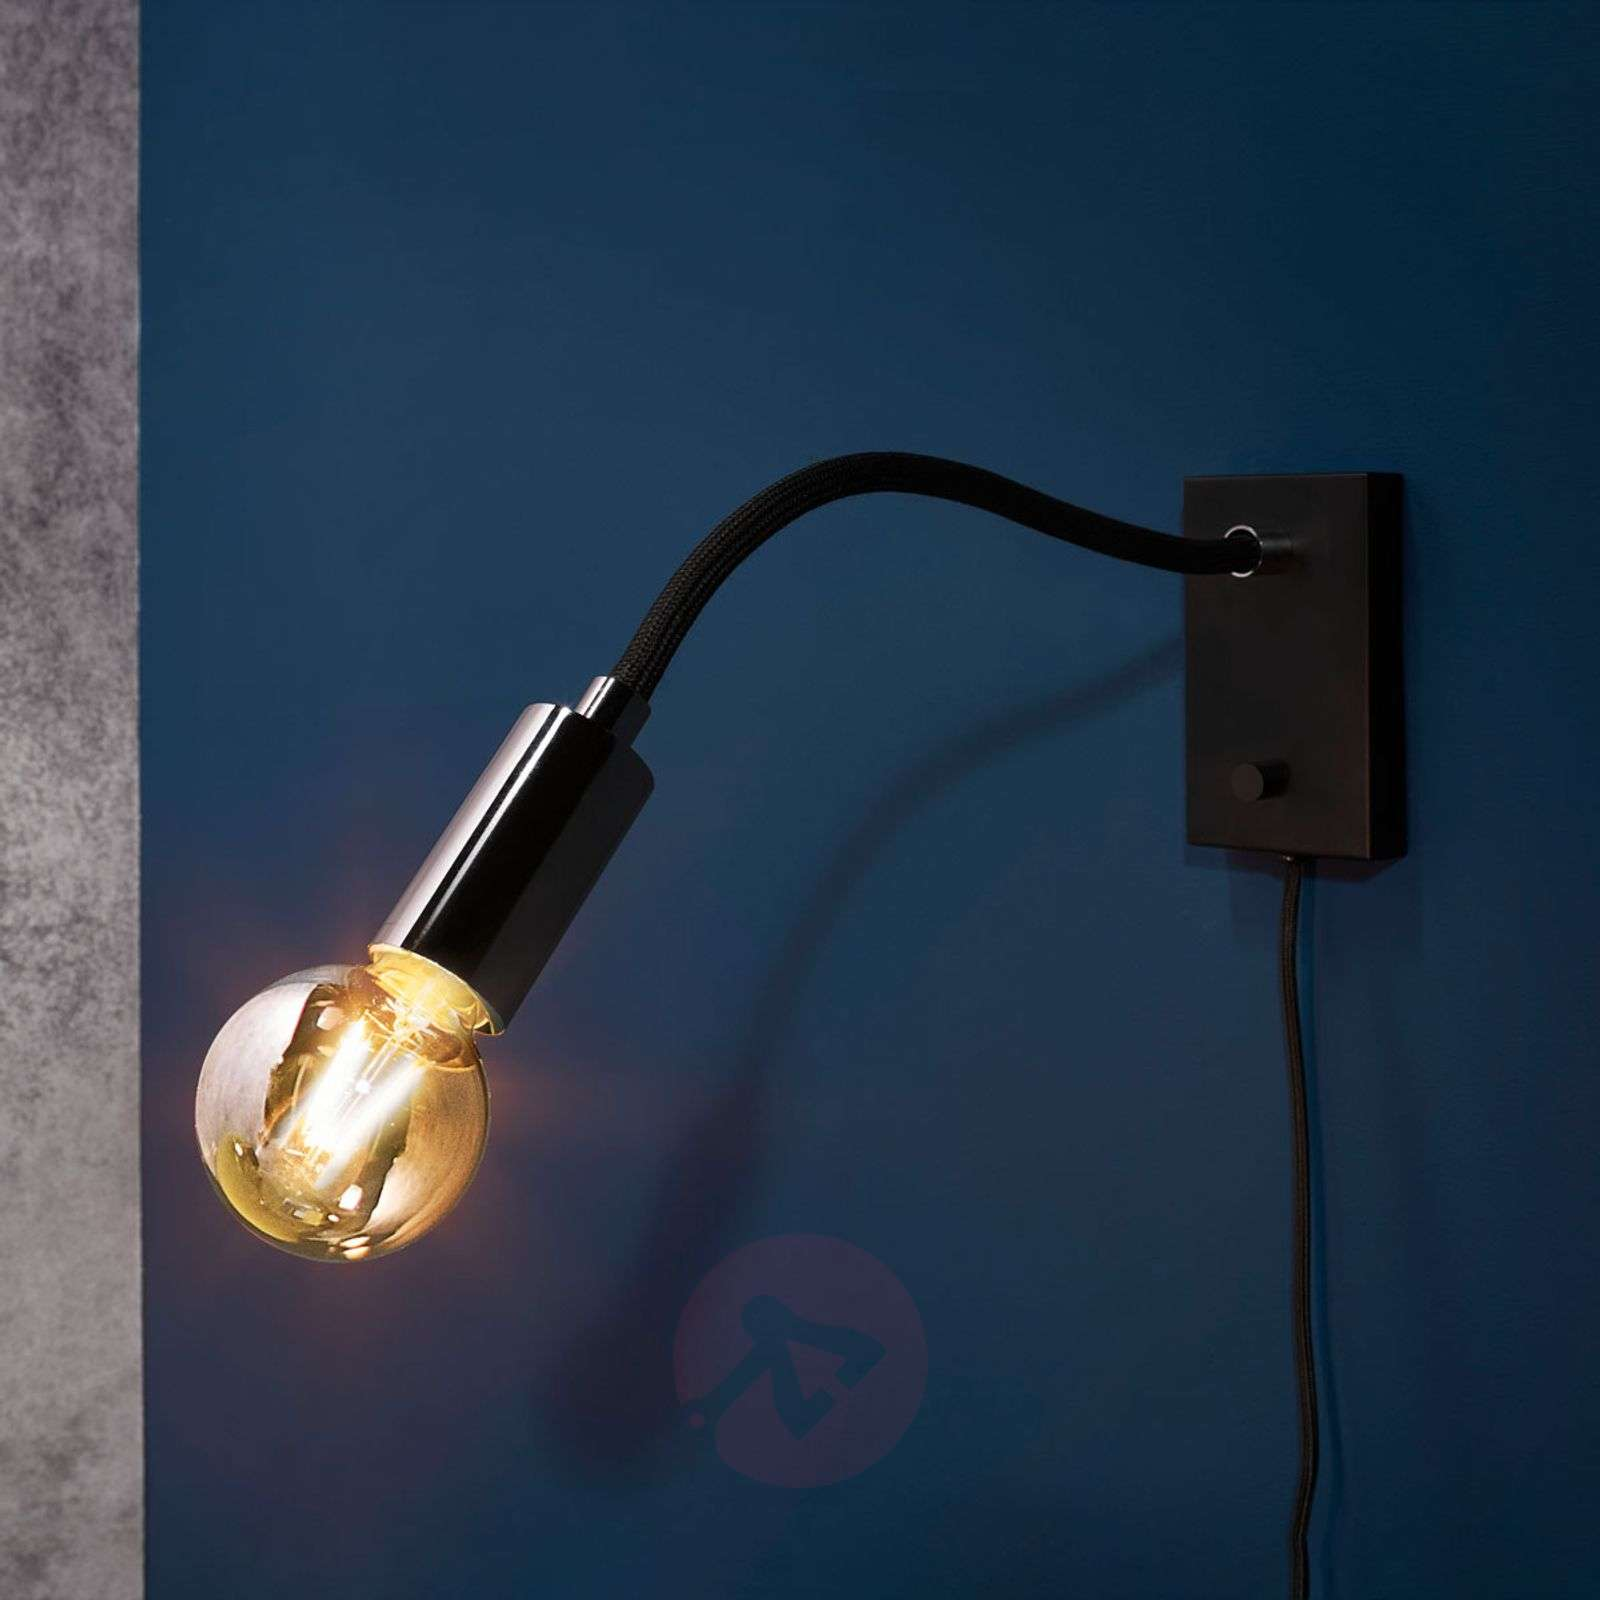 Acquista applique raw con dimmer e spina lampade